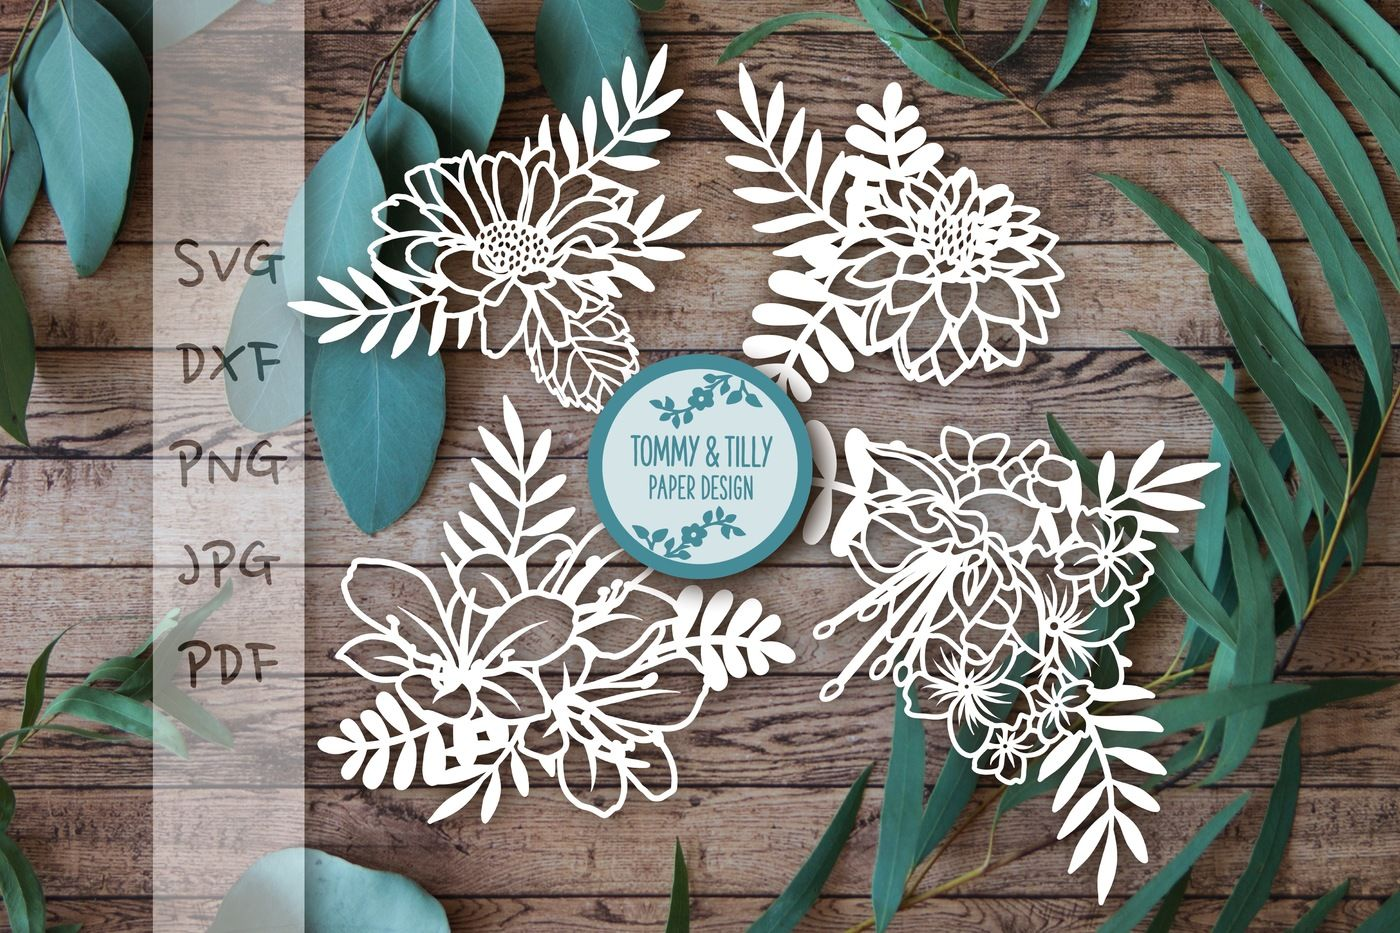 Flowers X 4 Svg Dxf Png Pdf Jpg By Tommy And Tilly Design